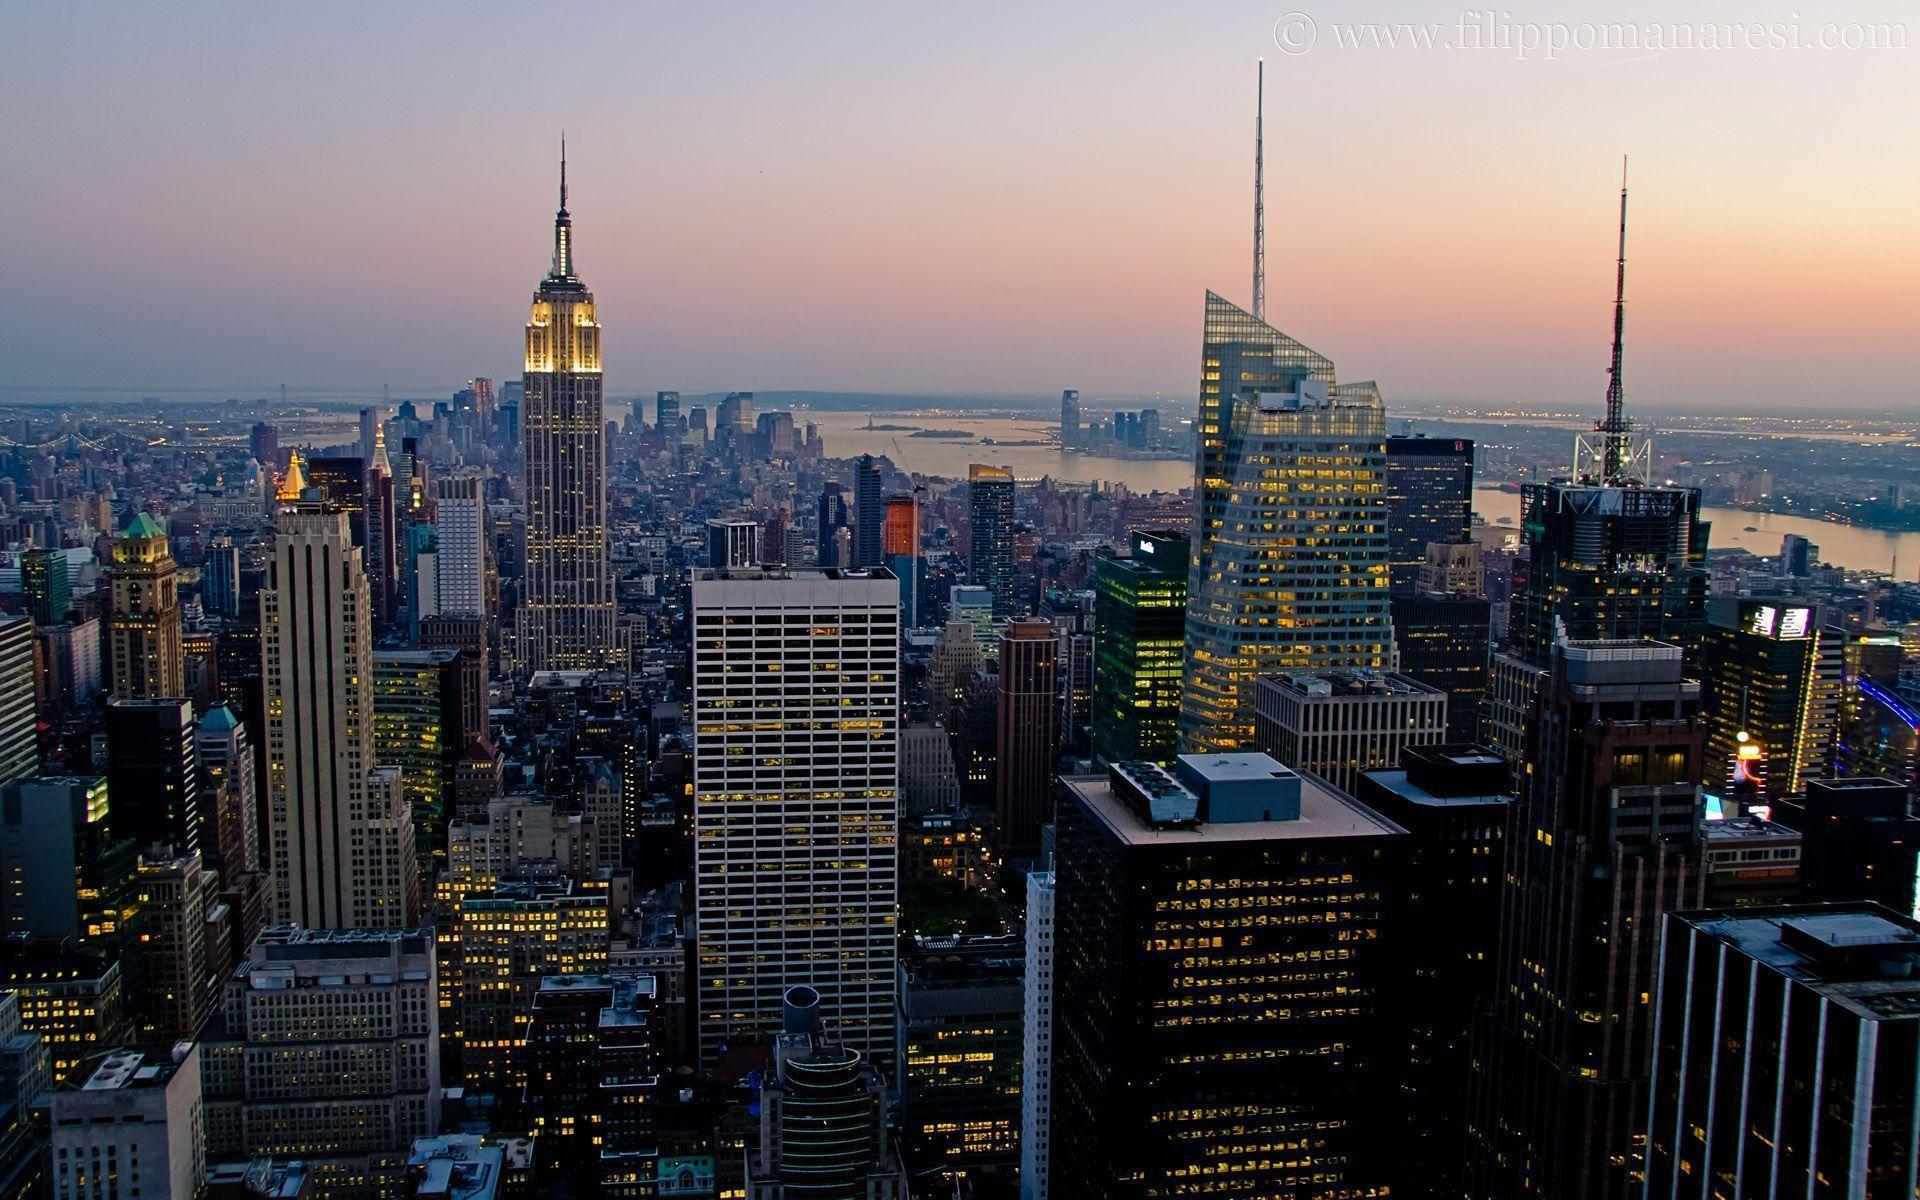 Hd Wallpapers Free New York City 1920x1200PX ~ New York City